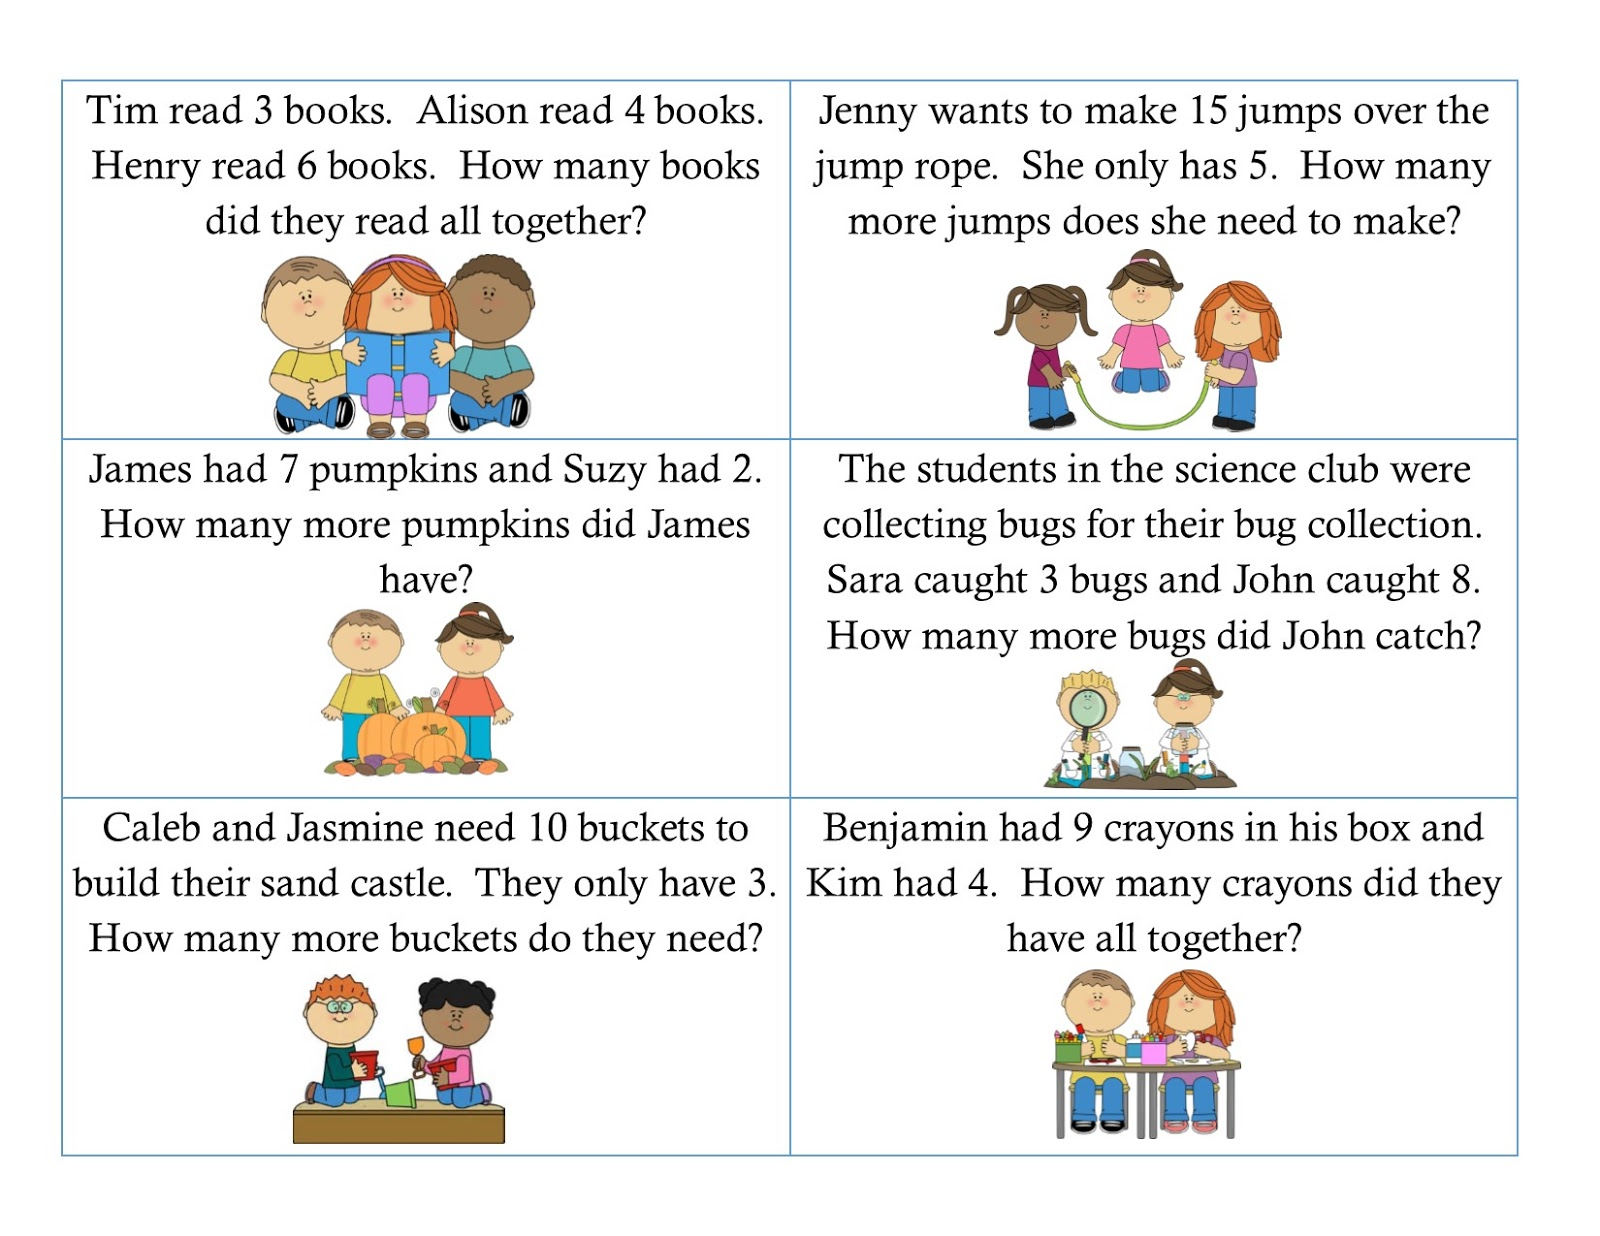 Worksheet Word Problems With Addition And Subtraction oh the thinks you can think mighty math monday word problems to use addition and subtraction skills correlate marksdots with numbers help solve problem materials problem